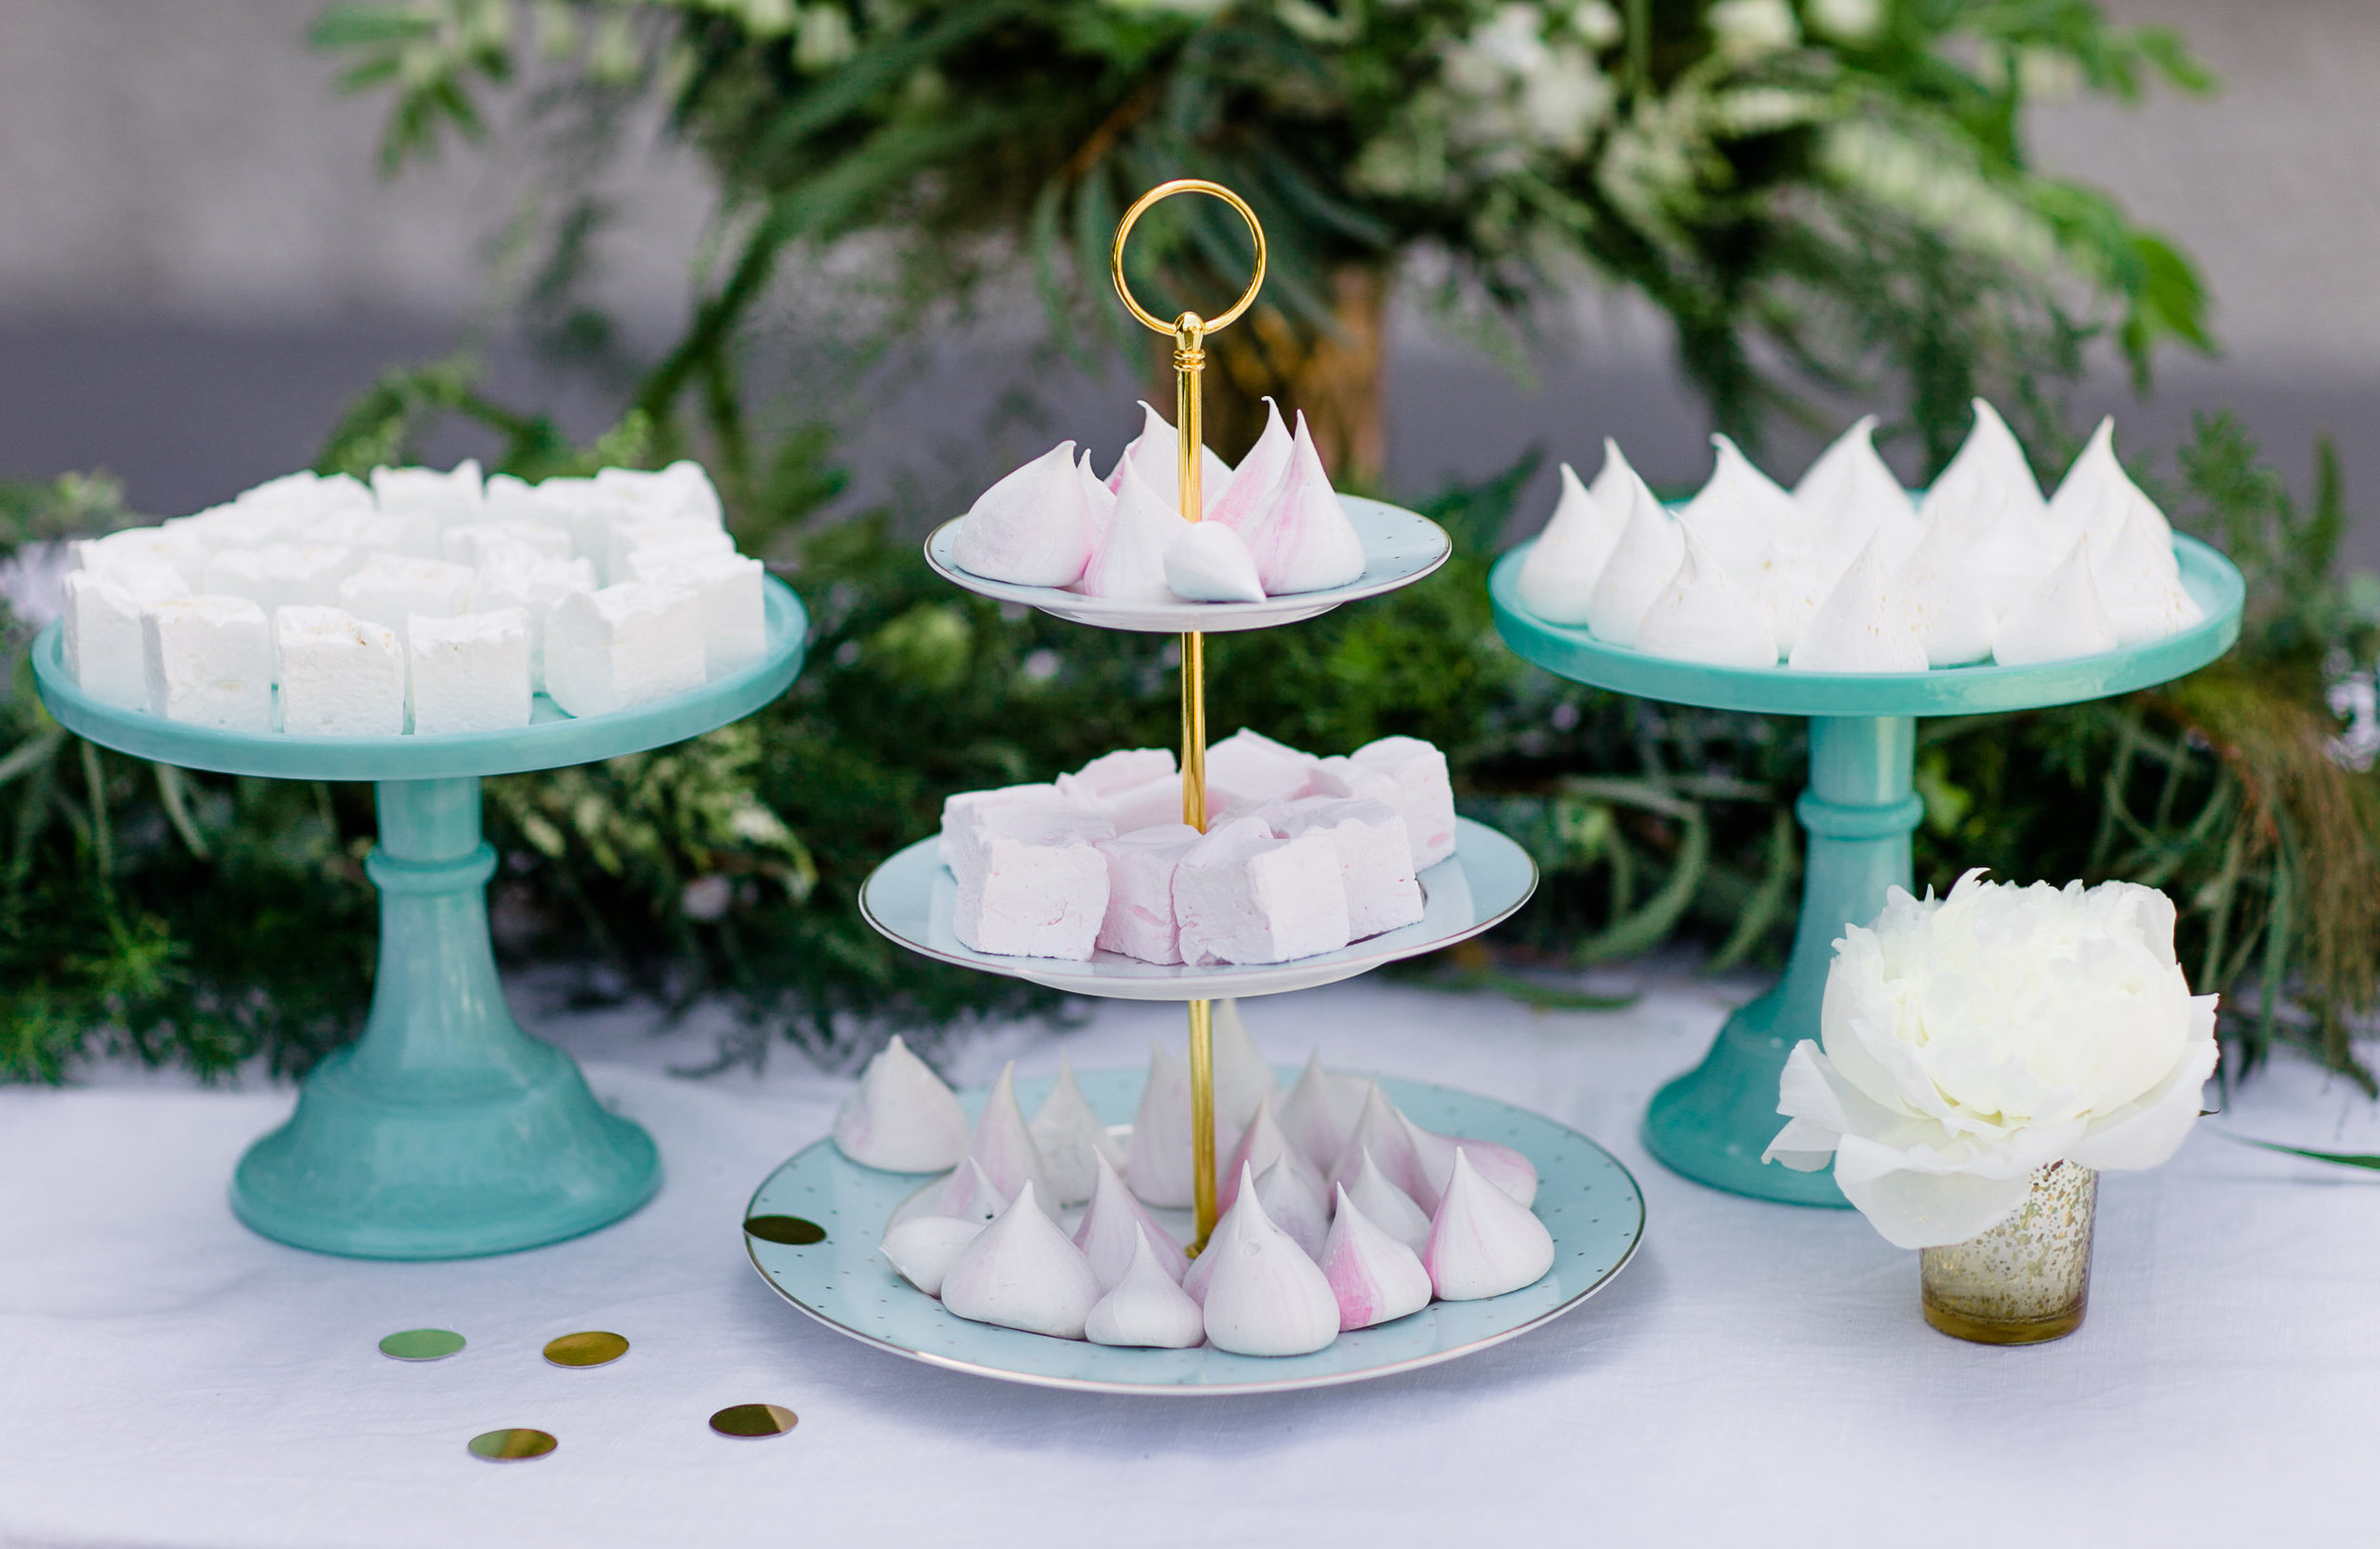 An array of blush, white and gold marshmallows and meringues, ideal for a champagne reception or dessert table.